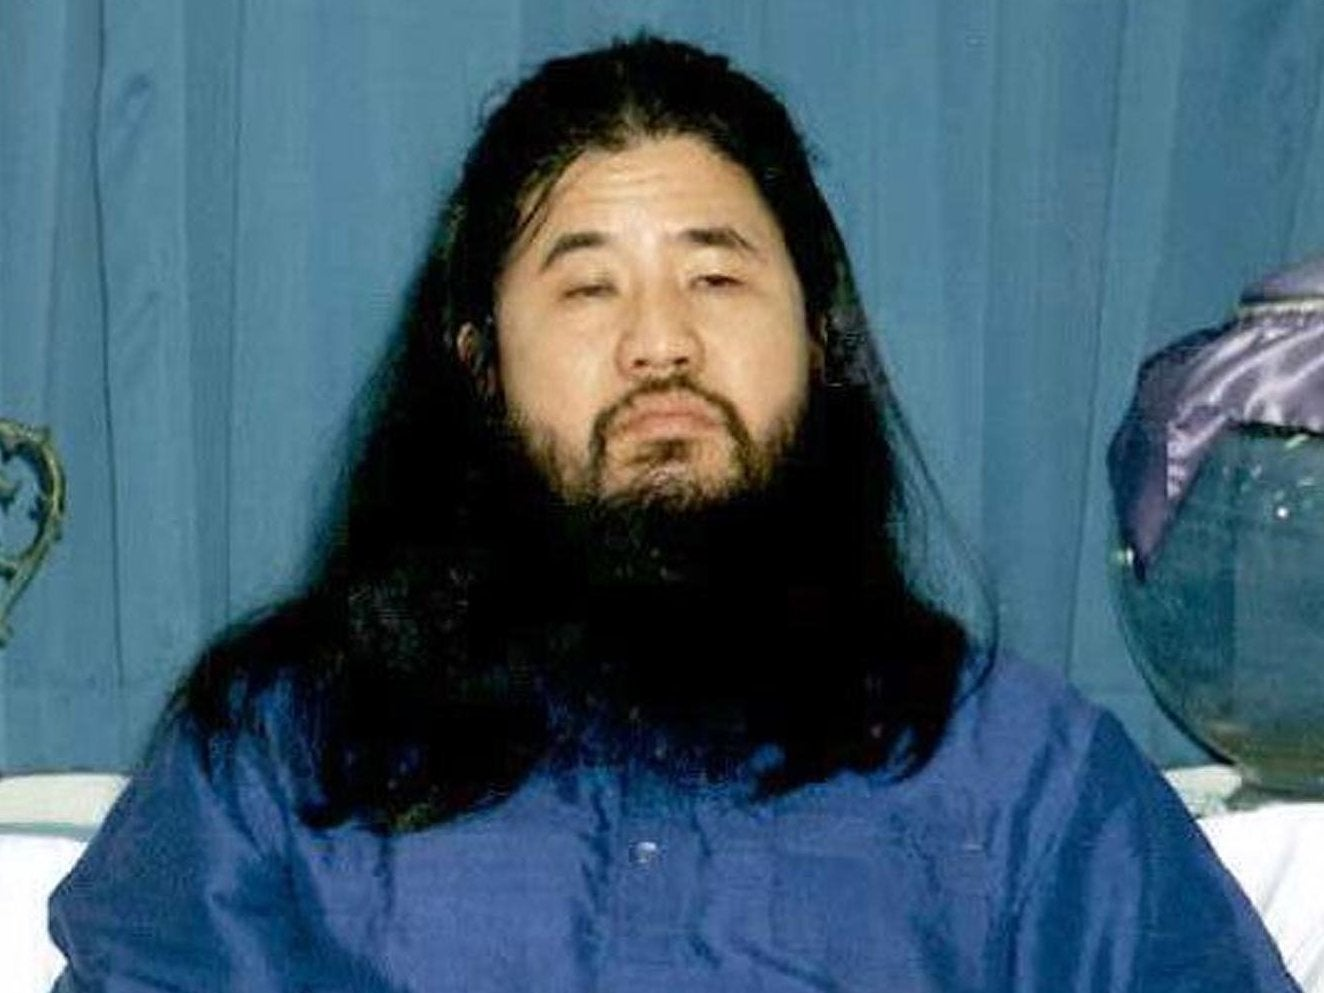 Doomsday cult leader Shoko Asahara executed for involvement in sarin attack on Tokyo subway